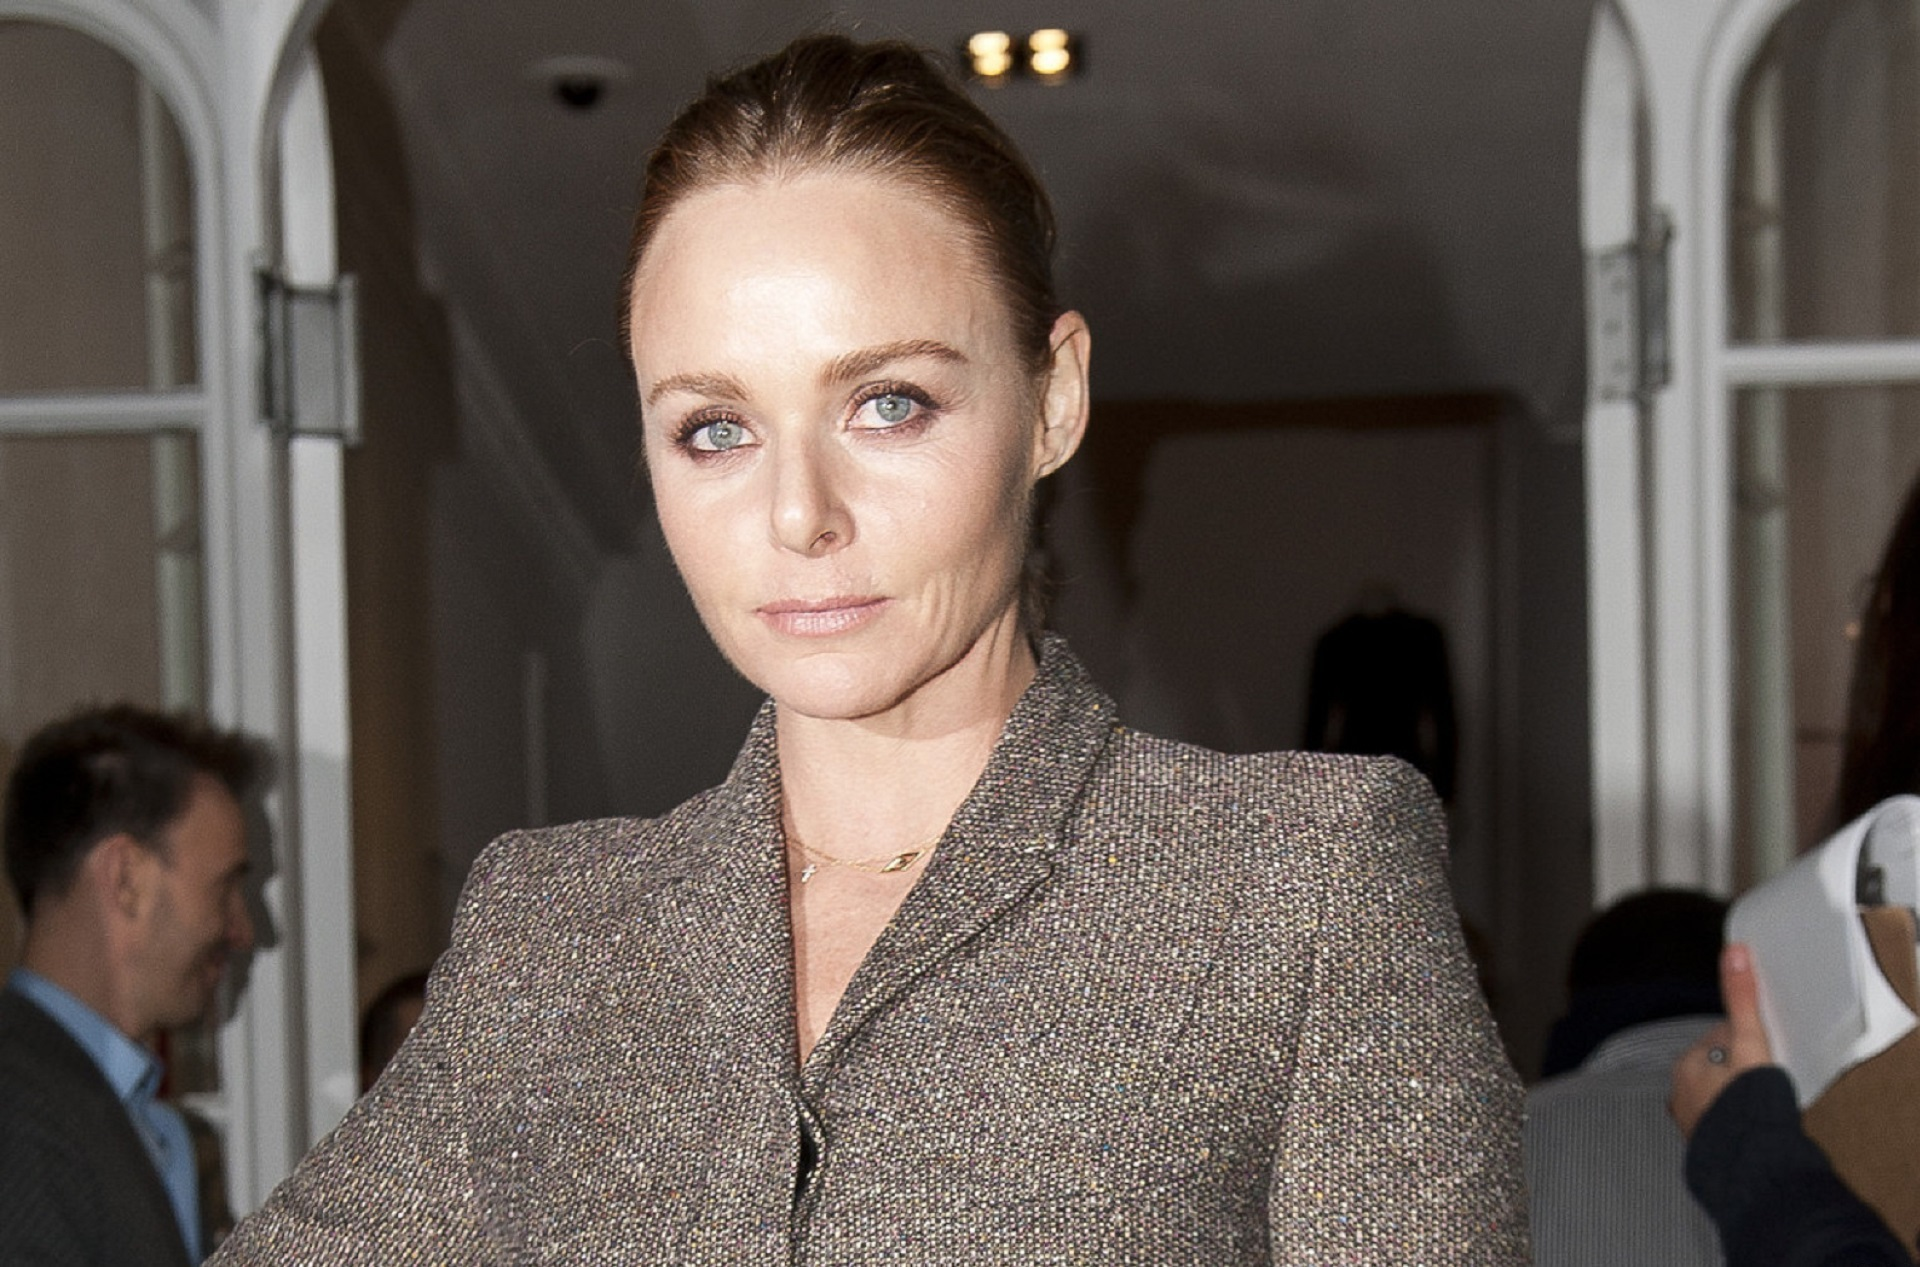 stella mc cartney Stella mccartney is an ethical fashion powerhouse, mixing sportswear and feminine elegance in her designs shop the latest stella mccartney range of bags, clothing and accessories, from the designer department at harvey nichols today.